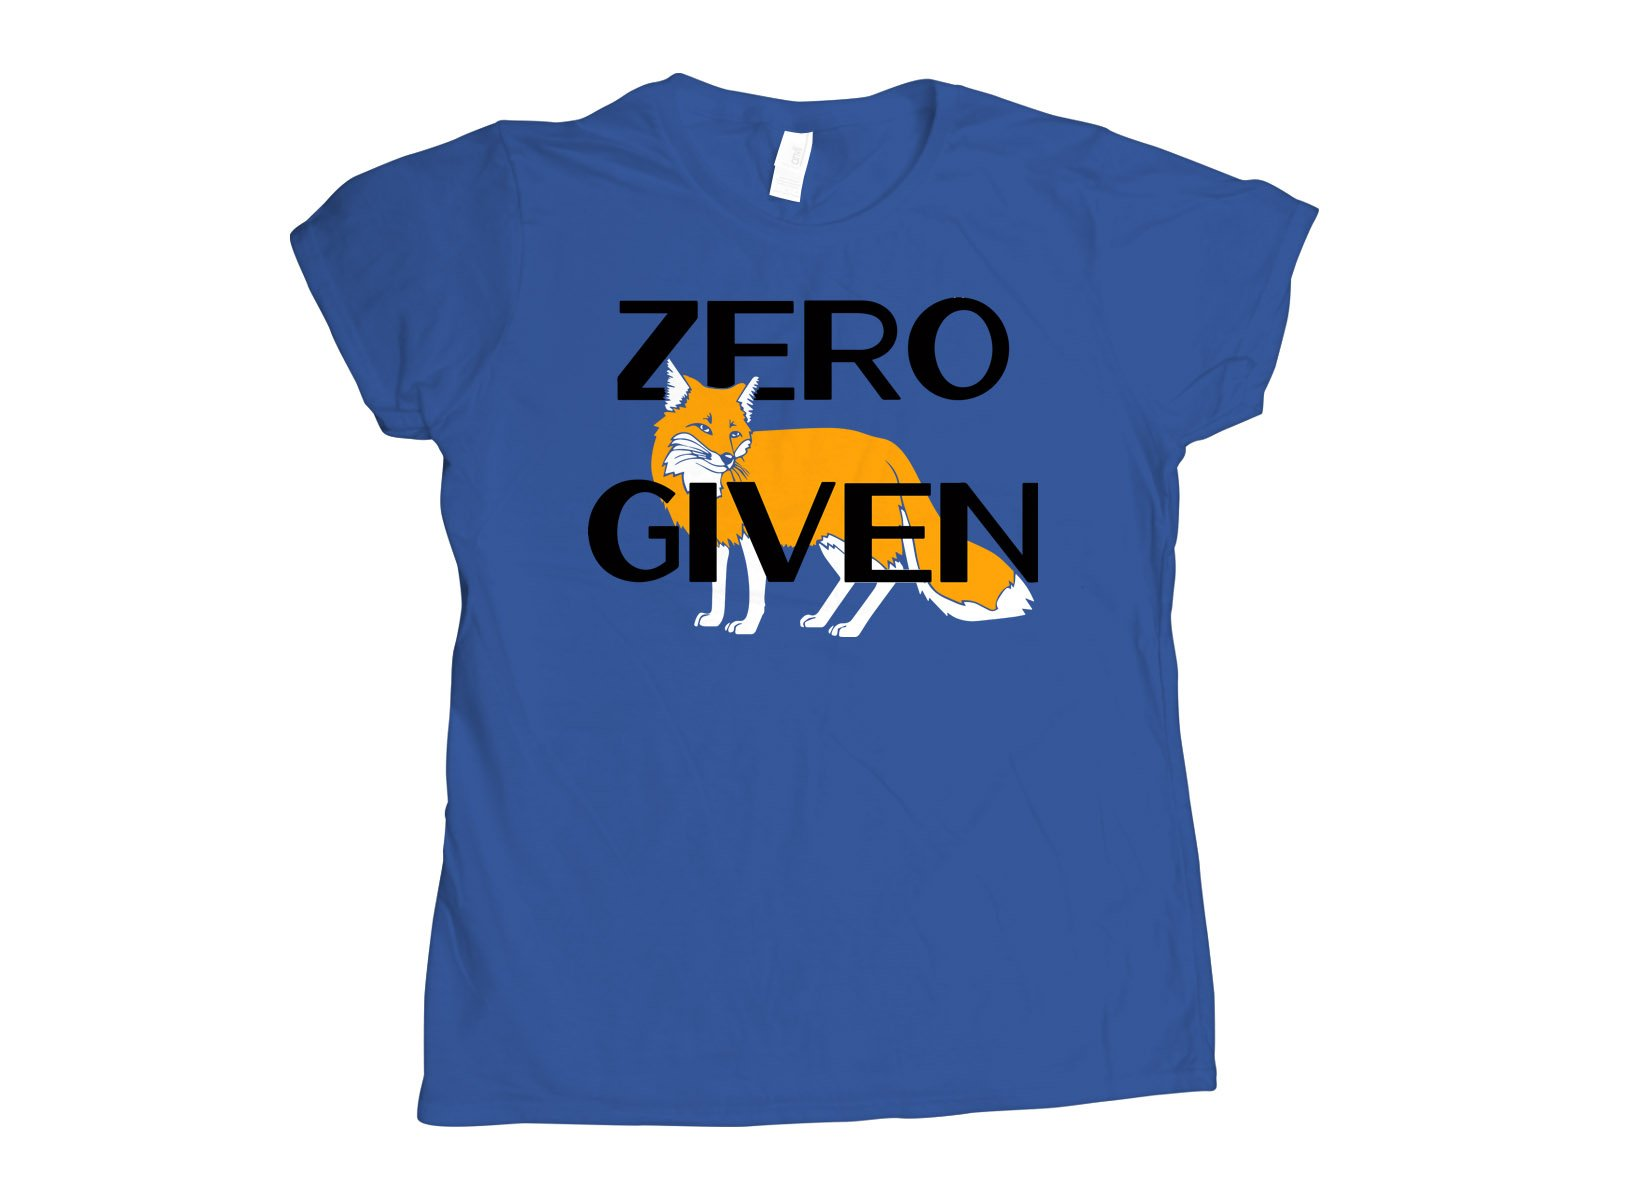 Zero Fox Given on Womens T-Shirt